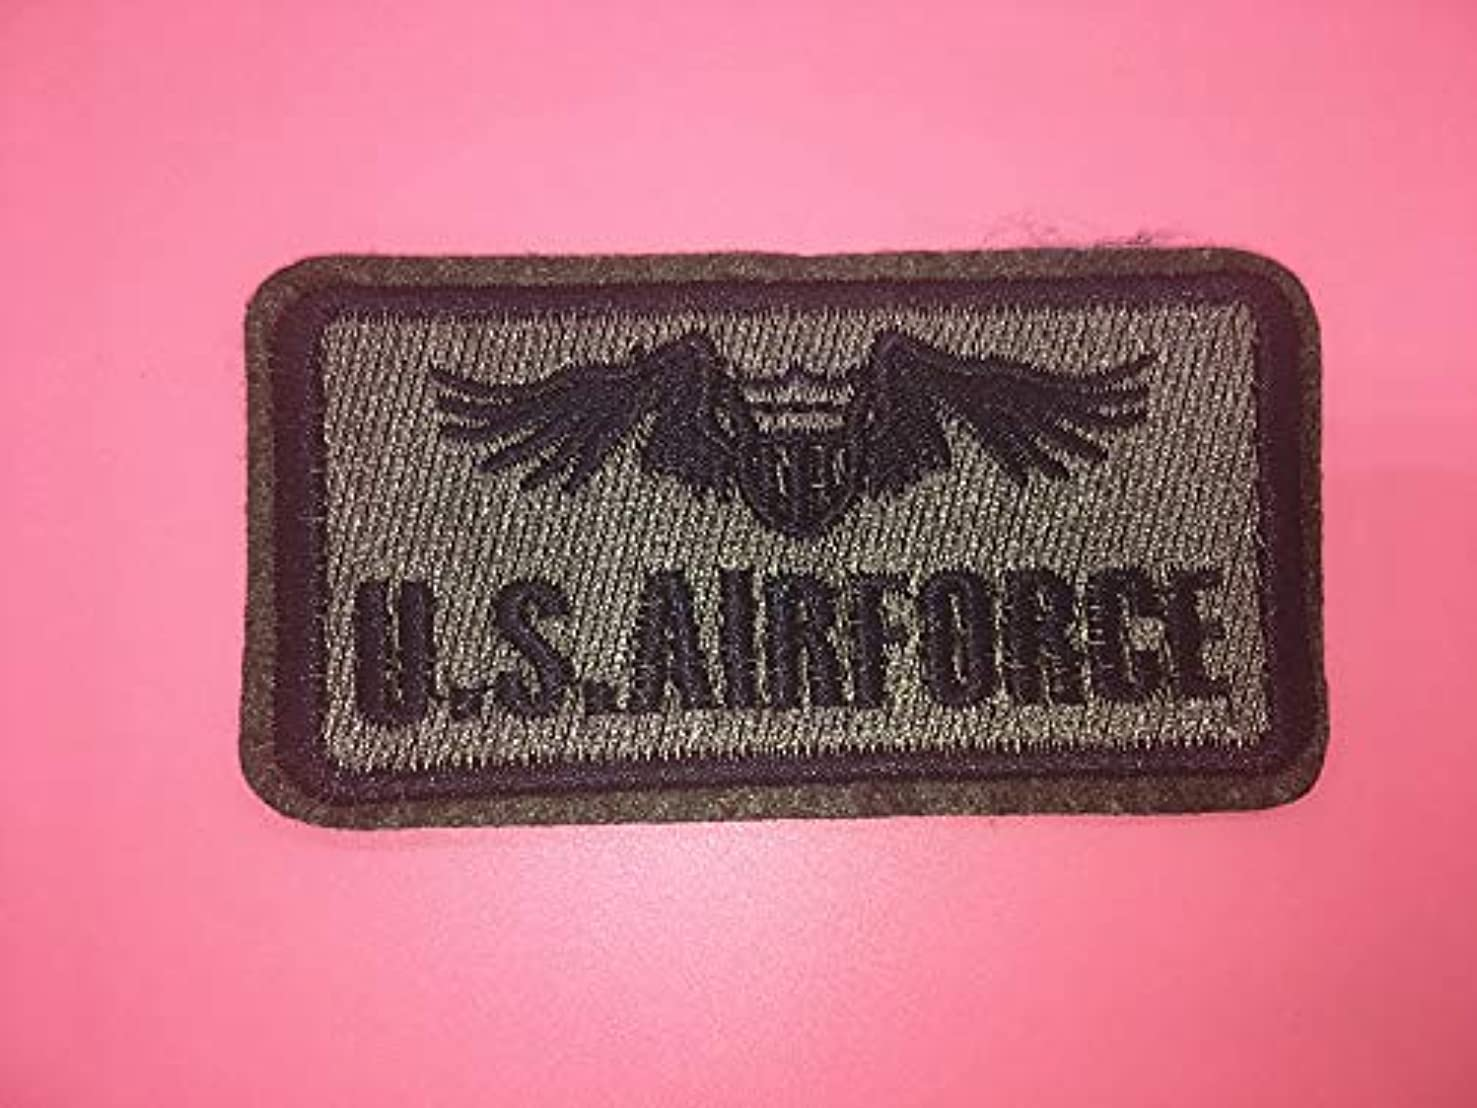 2 pieces Tactical USA Airforce Patch - American Airforce United States of America Military Patches (2)